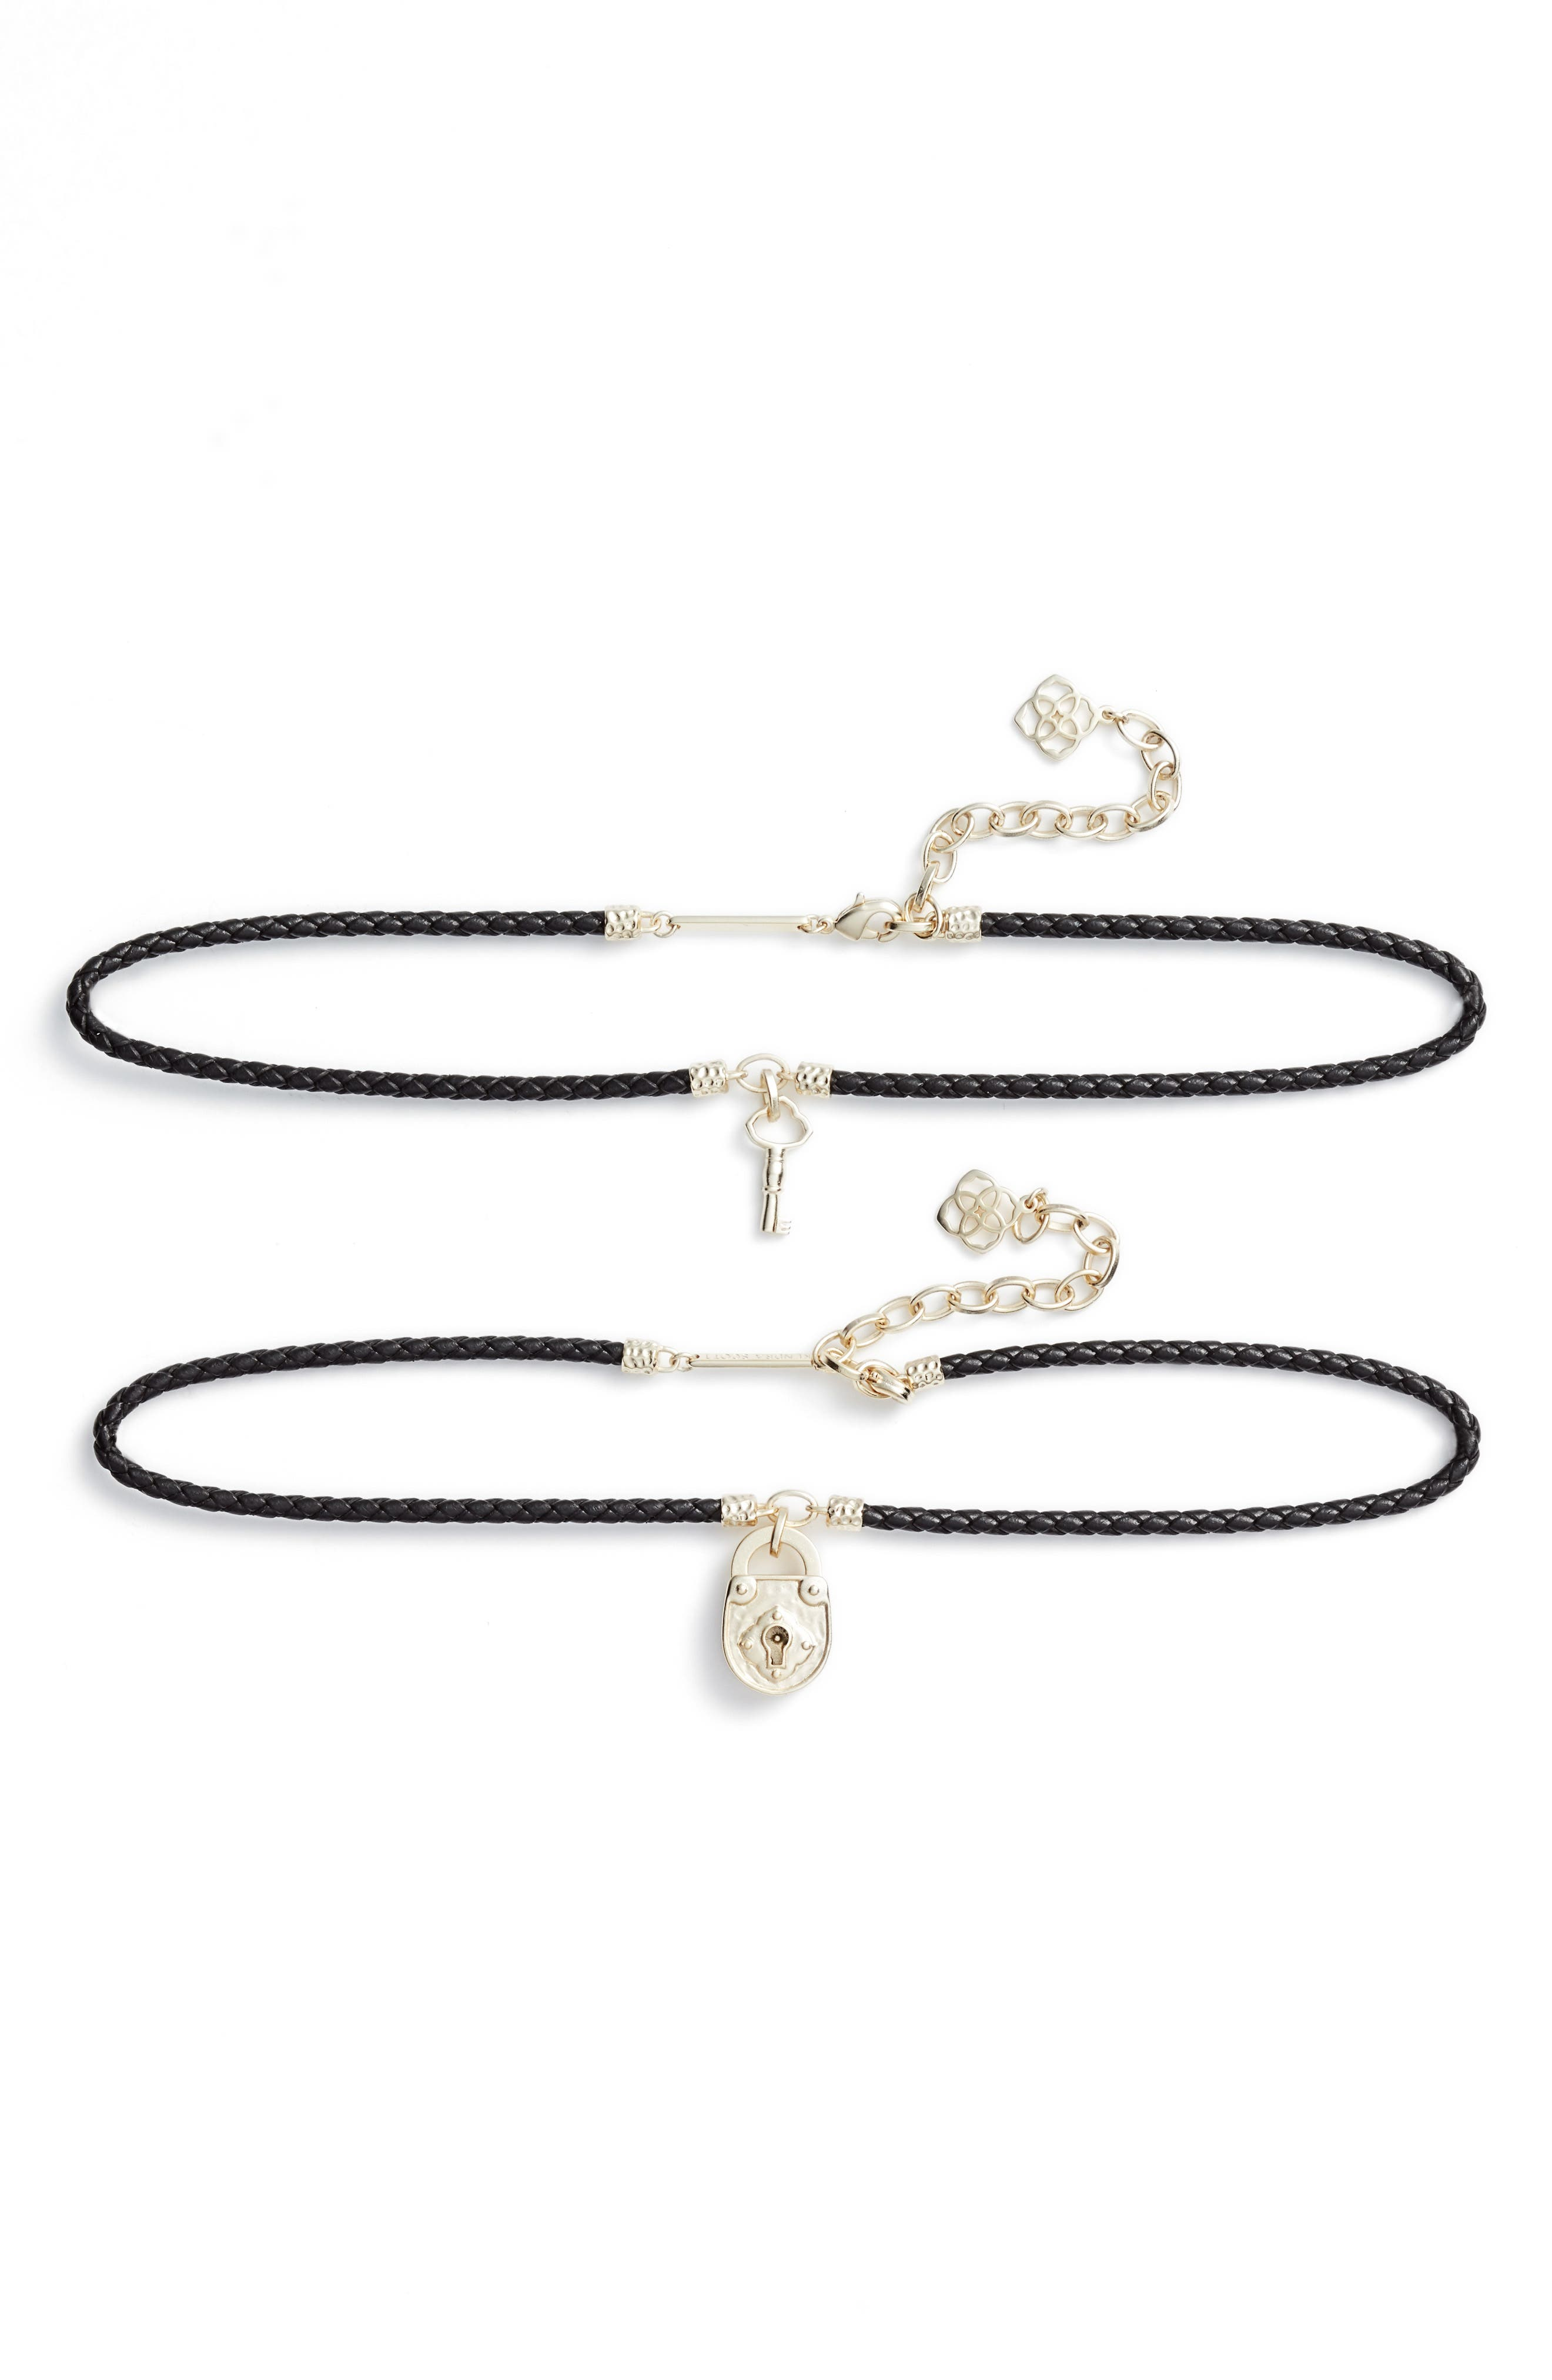 Sunny Set of 2 Choker Necklaces,                             Main thumbnail 1, color,                             Black Leather/ Gold